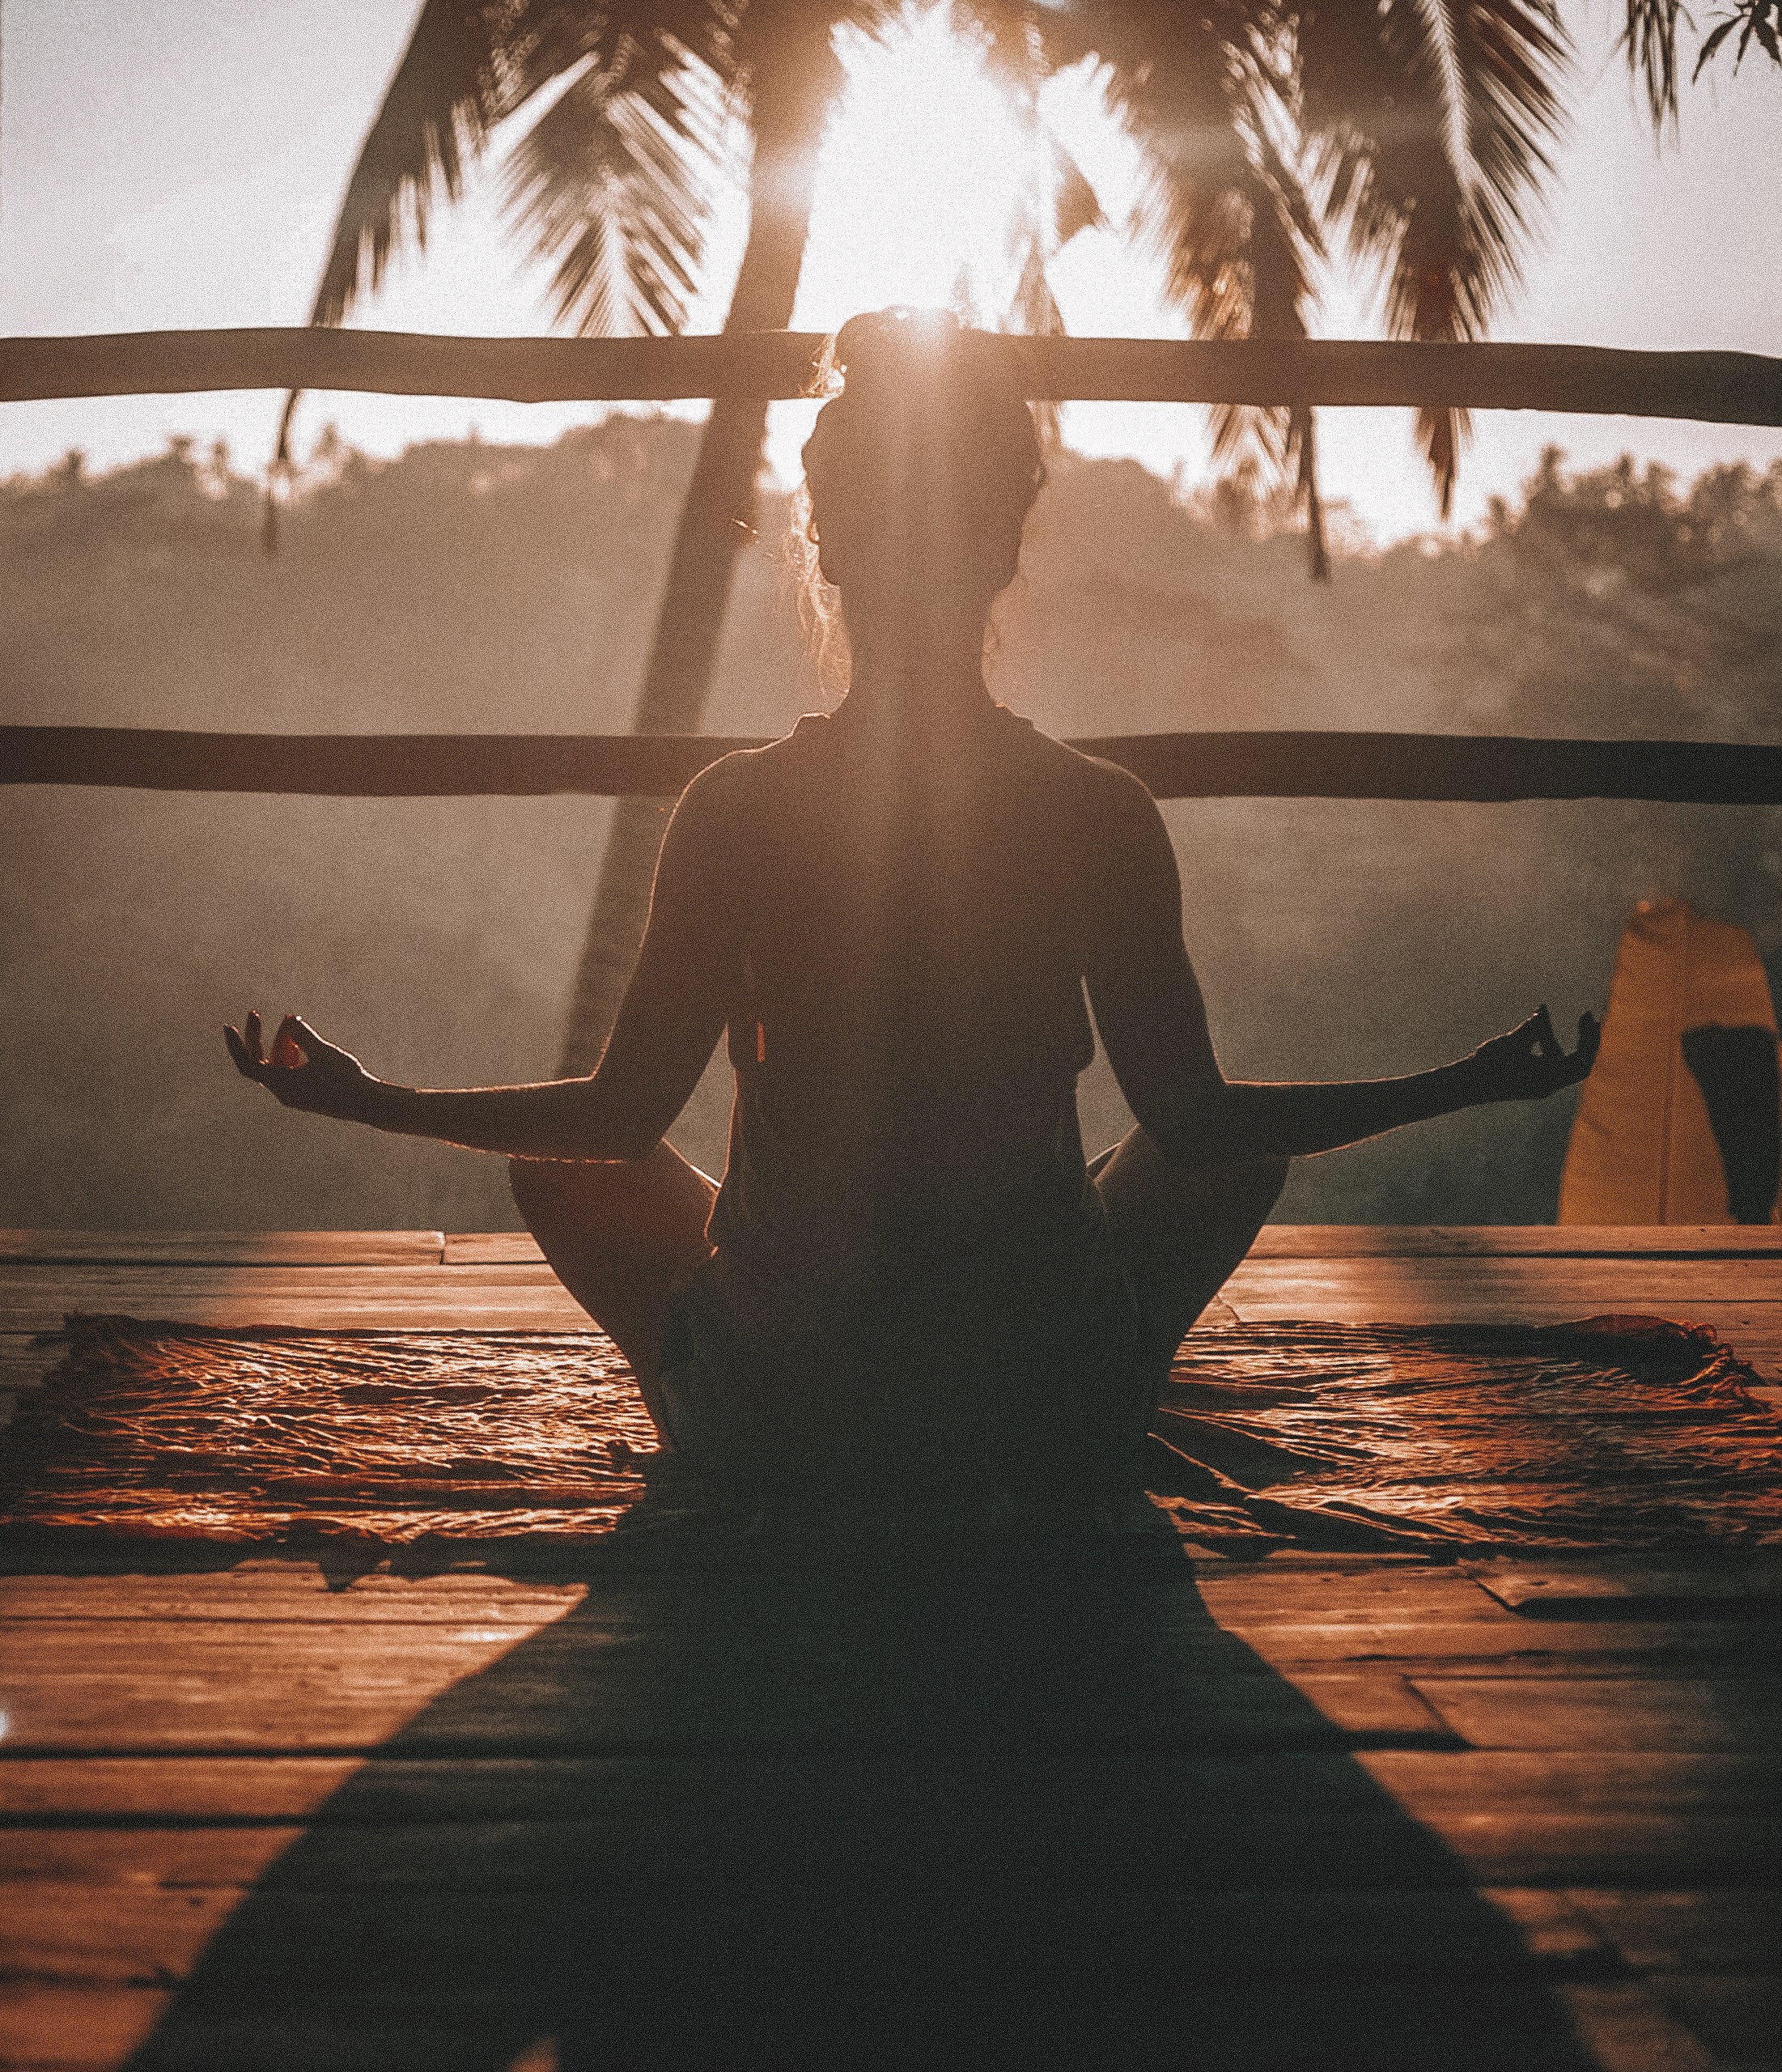 how can we return to whole with self-care